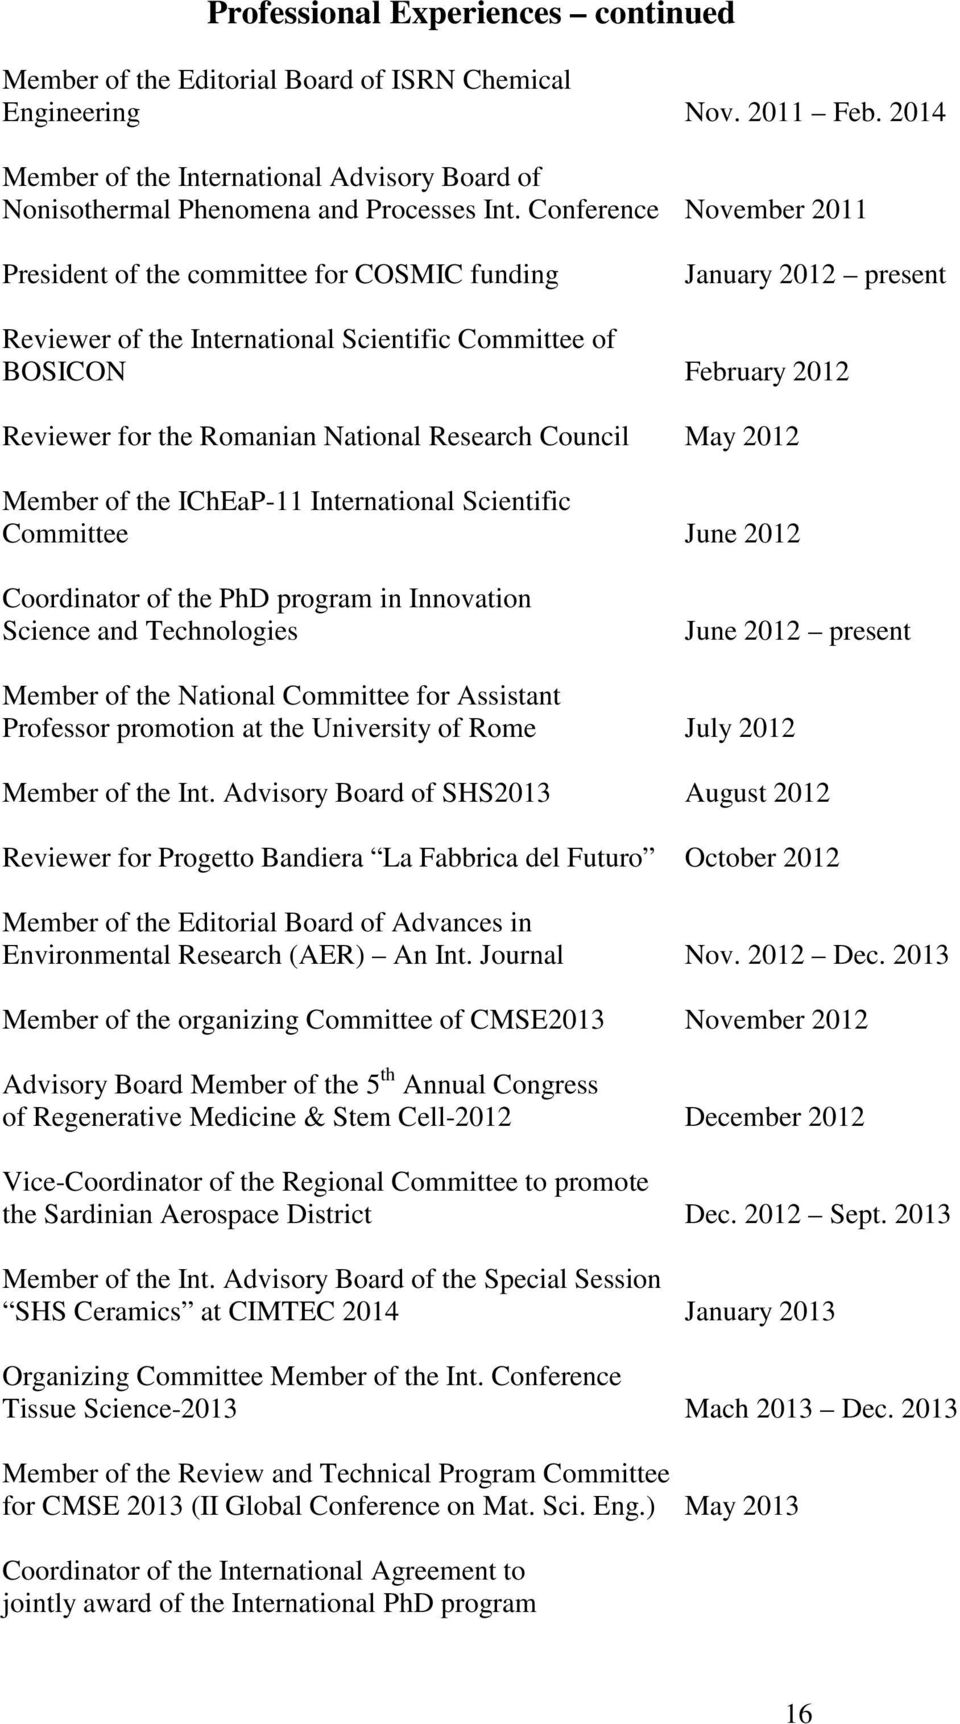 Conference November 2011 President of the committee for COSMIC funding January 2012 present Reviewer of the International Scientific Committee of BOSICON February 2012 Reviewer for the Romanian